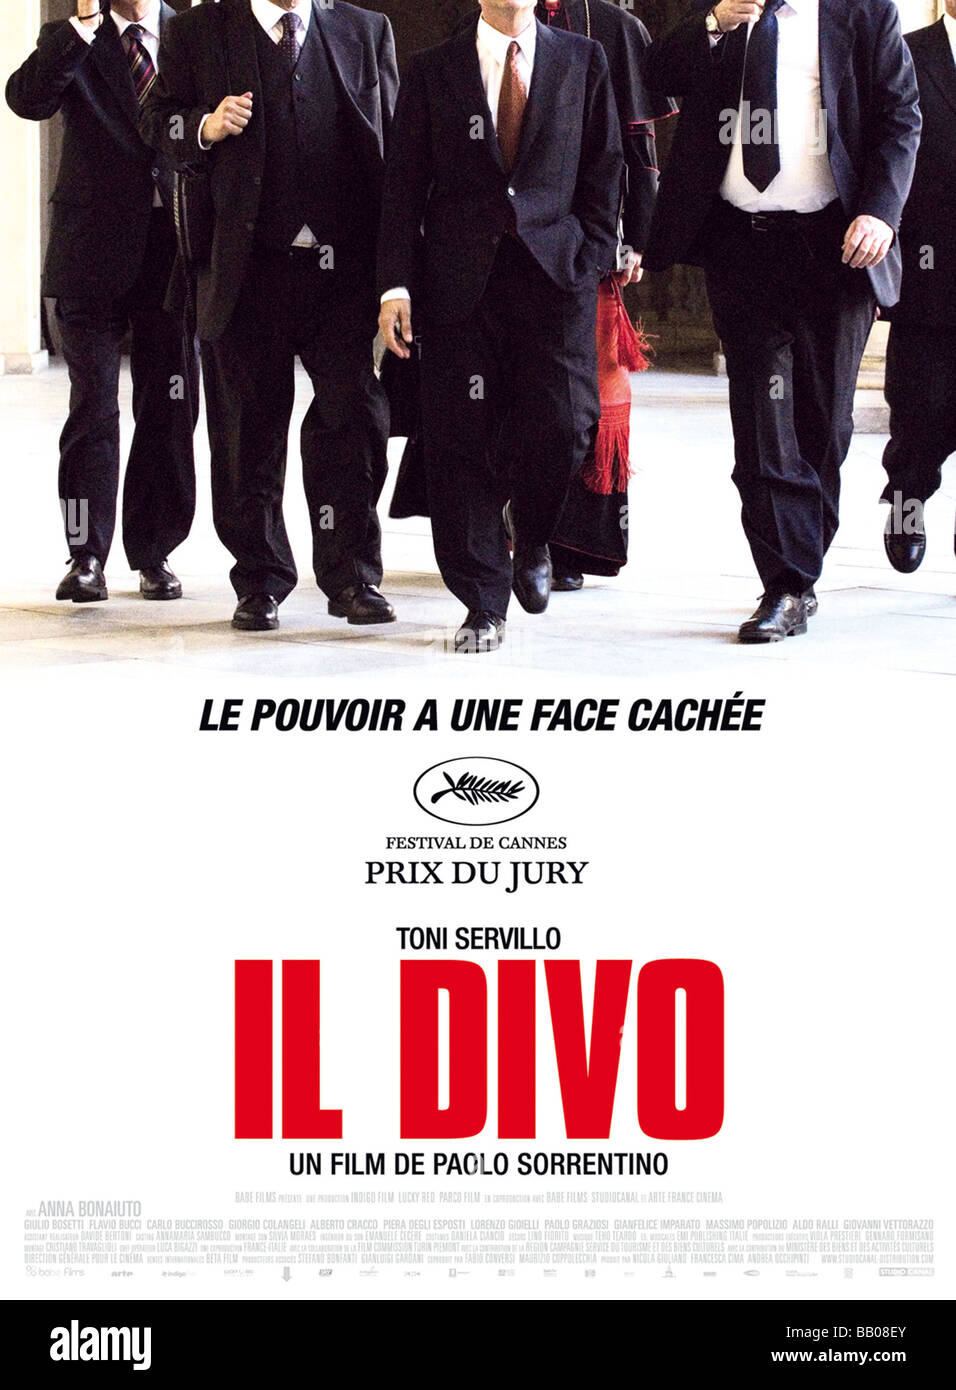 Il Divo Year Stock Photos & Il Divo Year Stock Images - Alamy